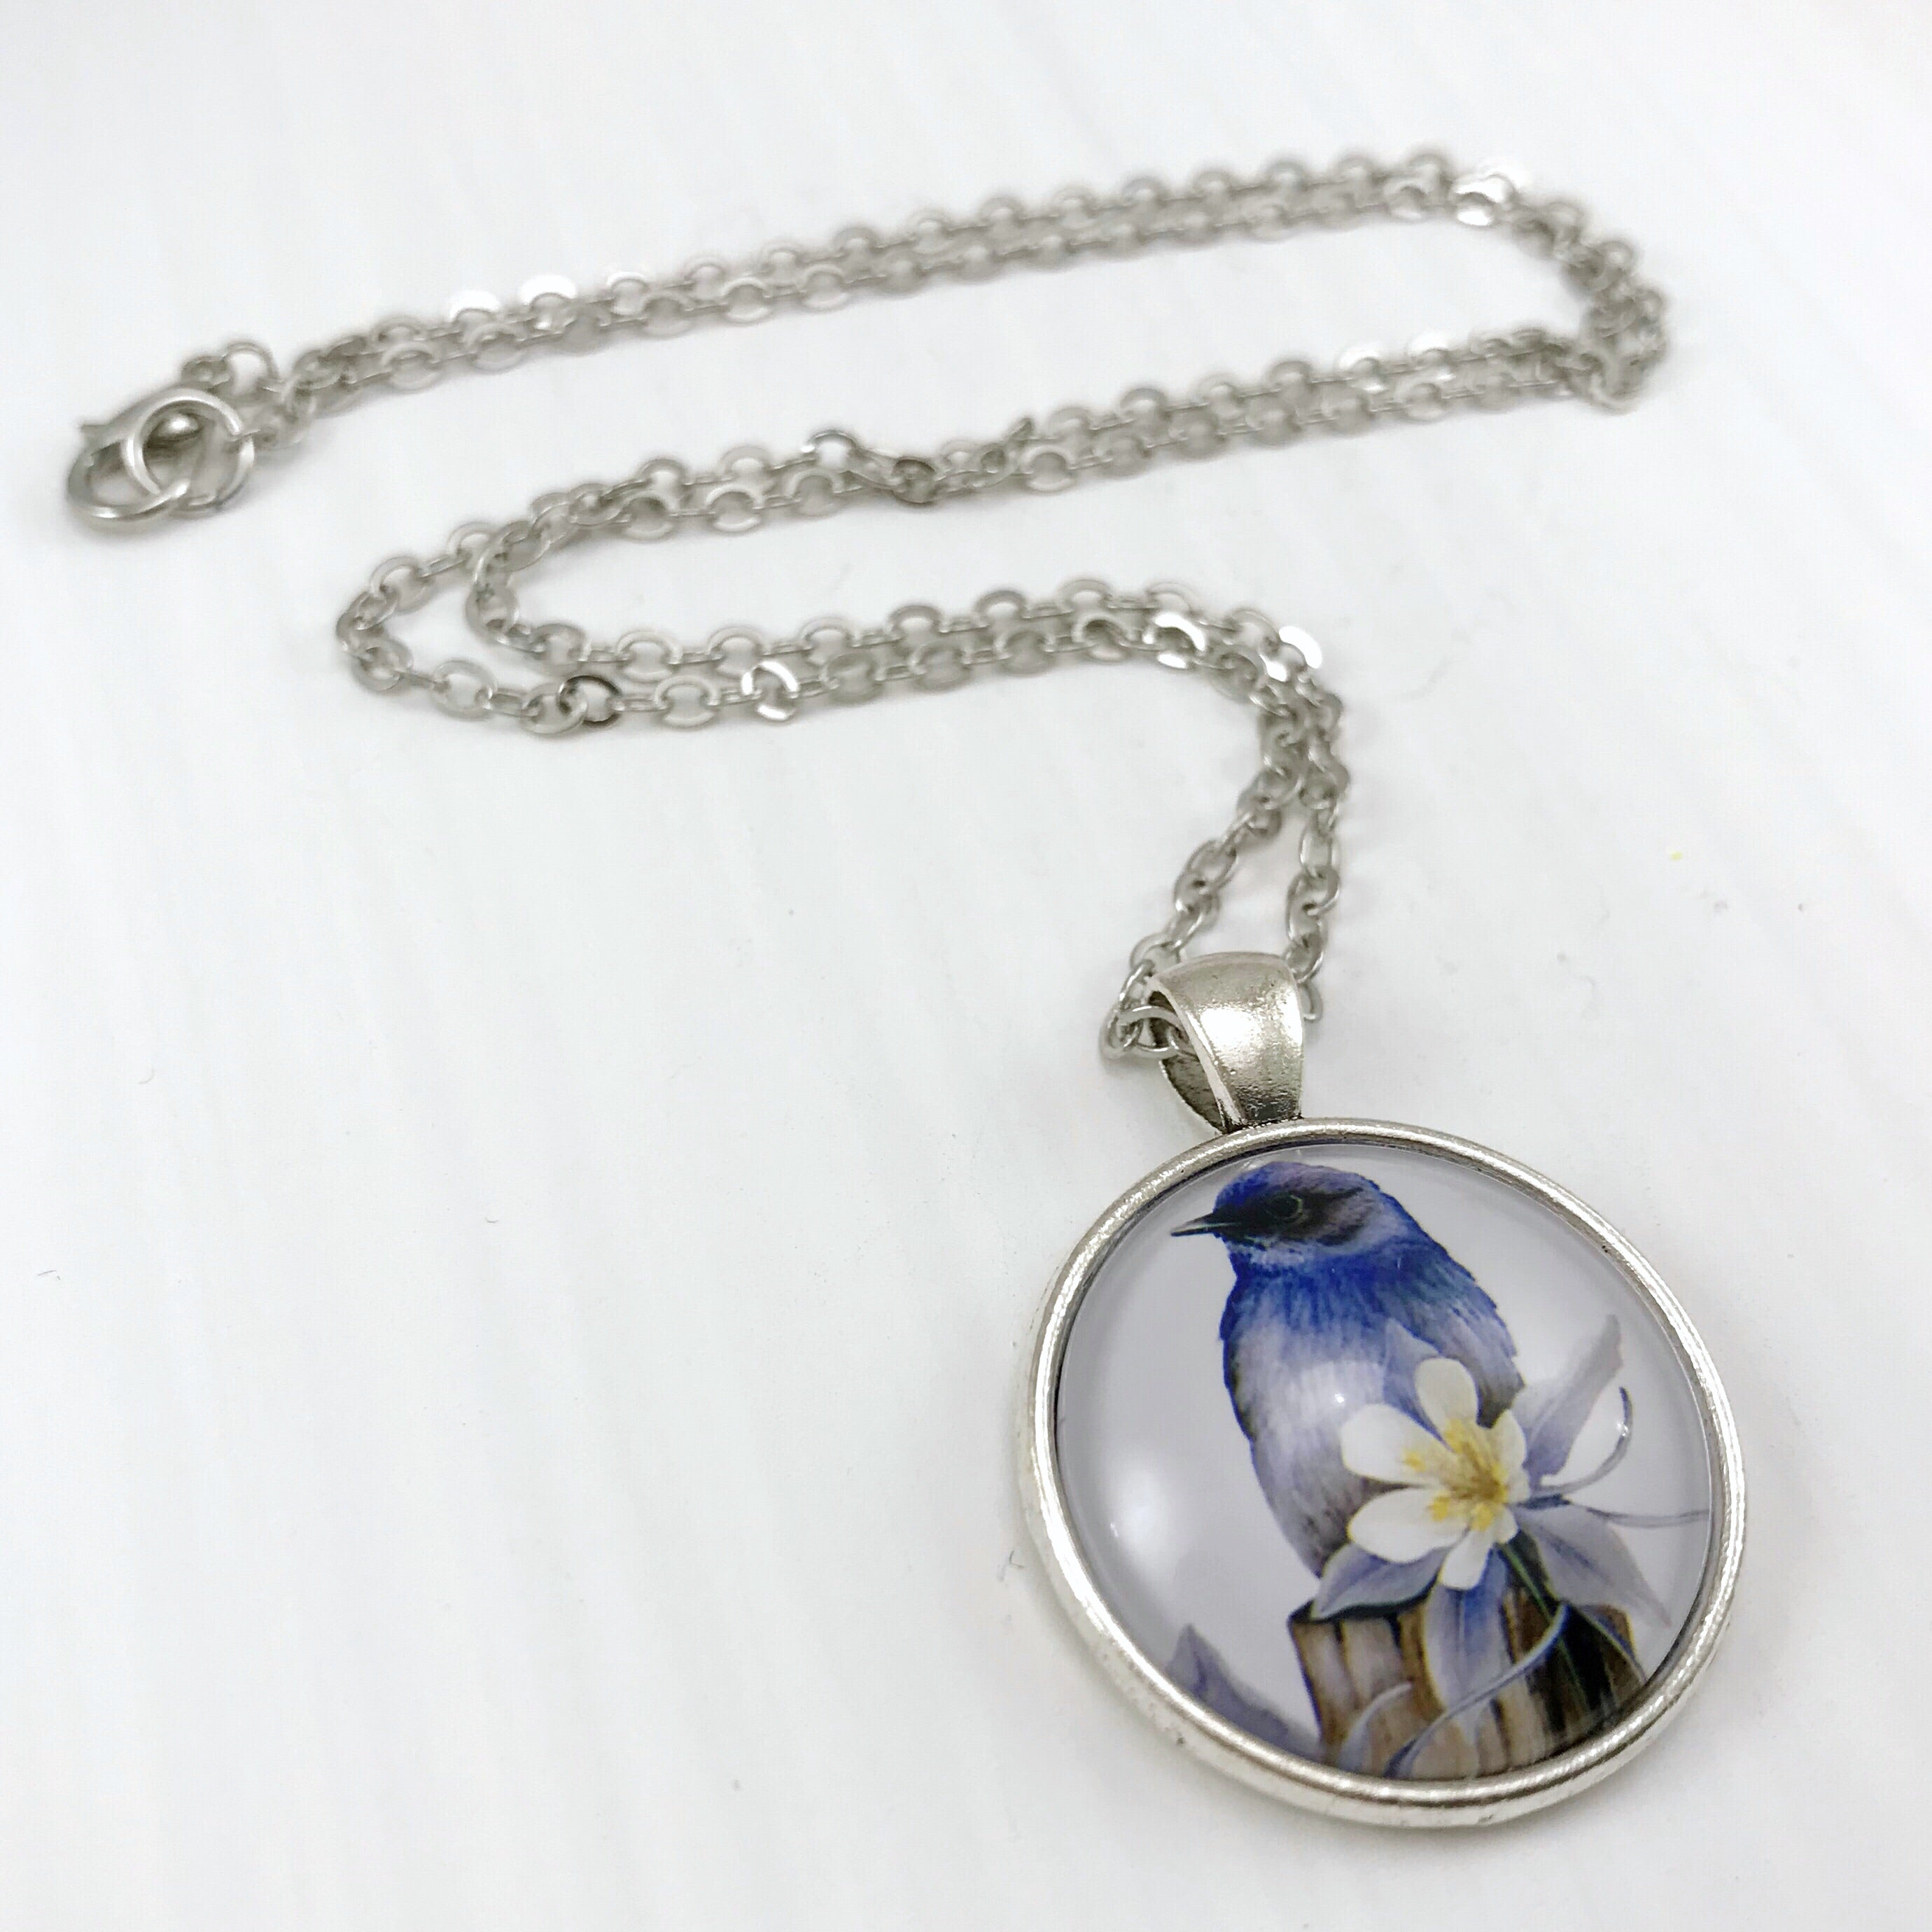 Blue Bird Necklace - Antique Silver